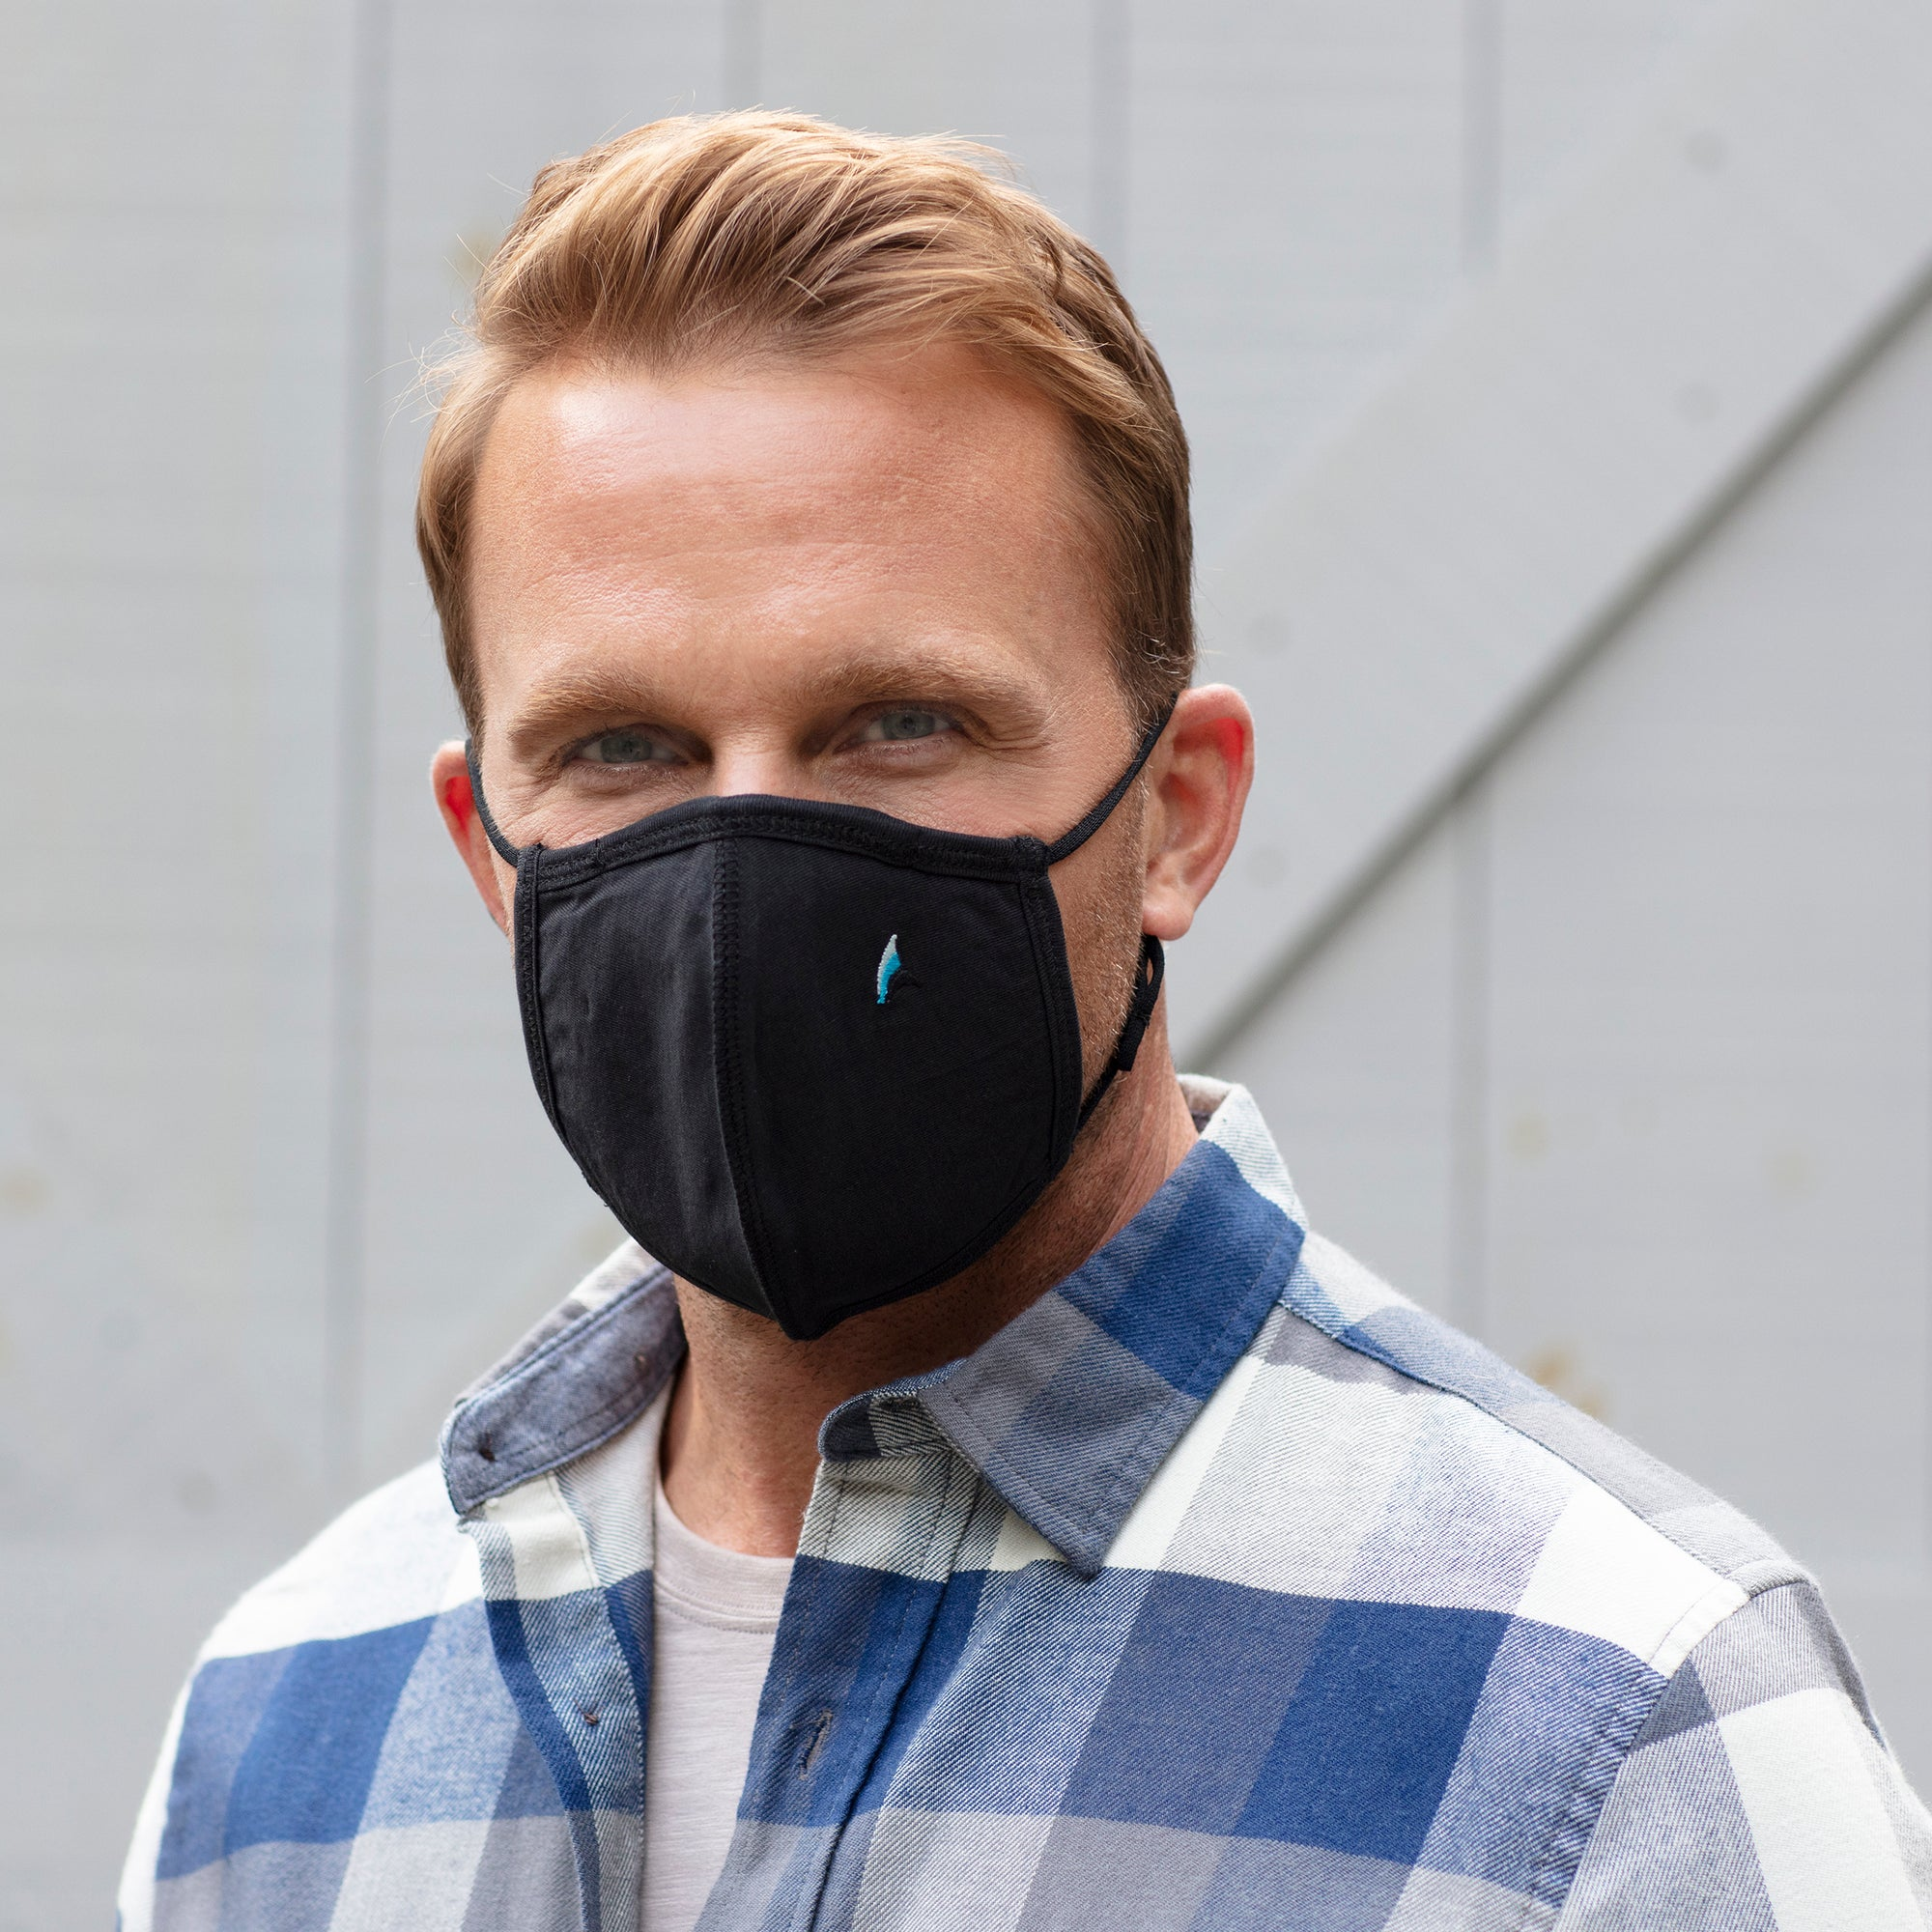 Puretec Cool™ Nanofiber  Filter Mask in Navy Blazer)